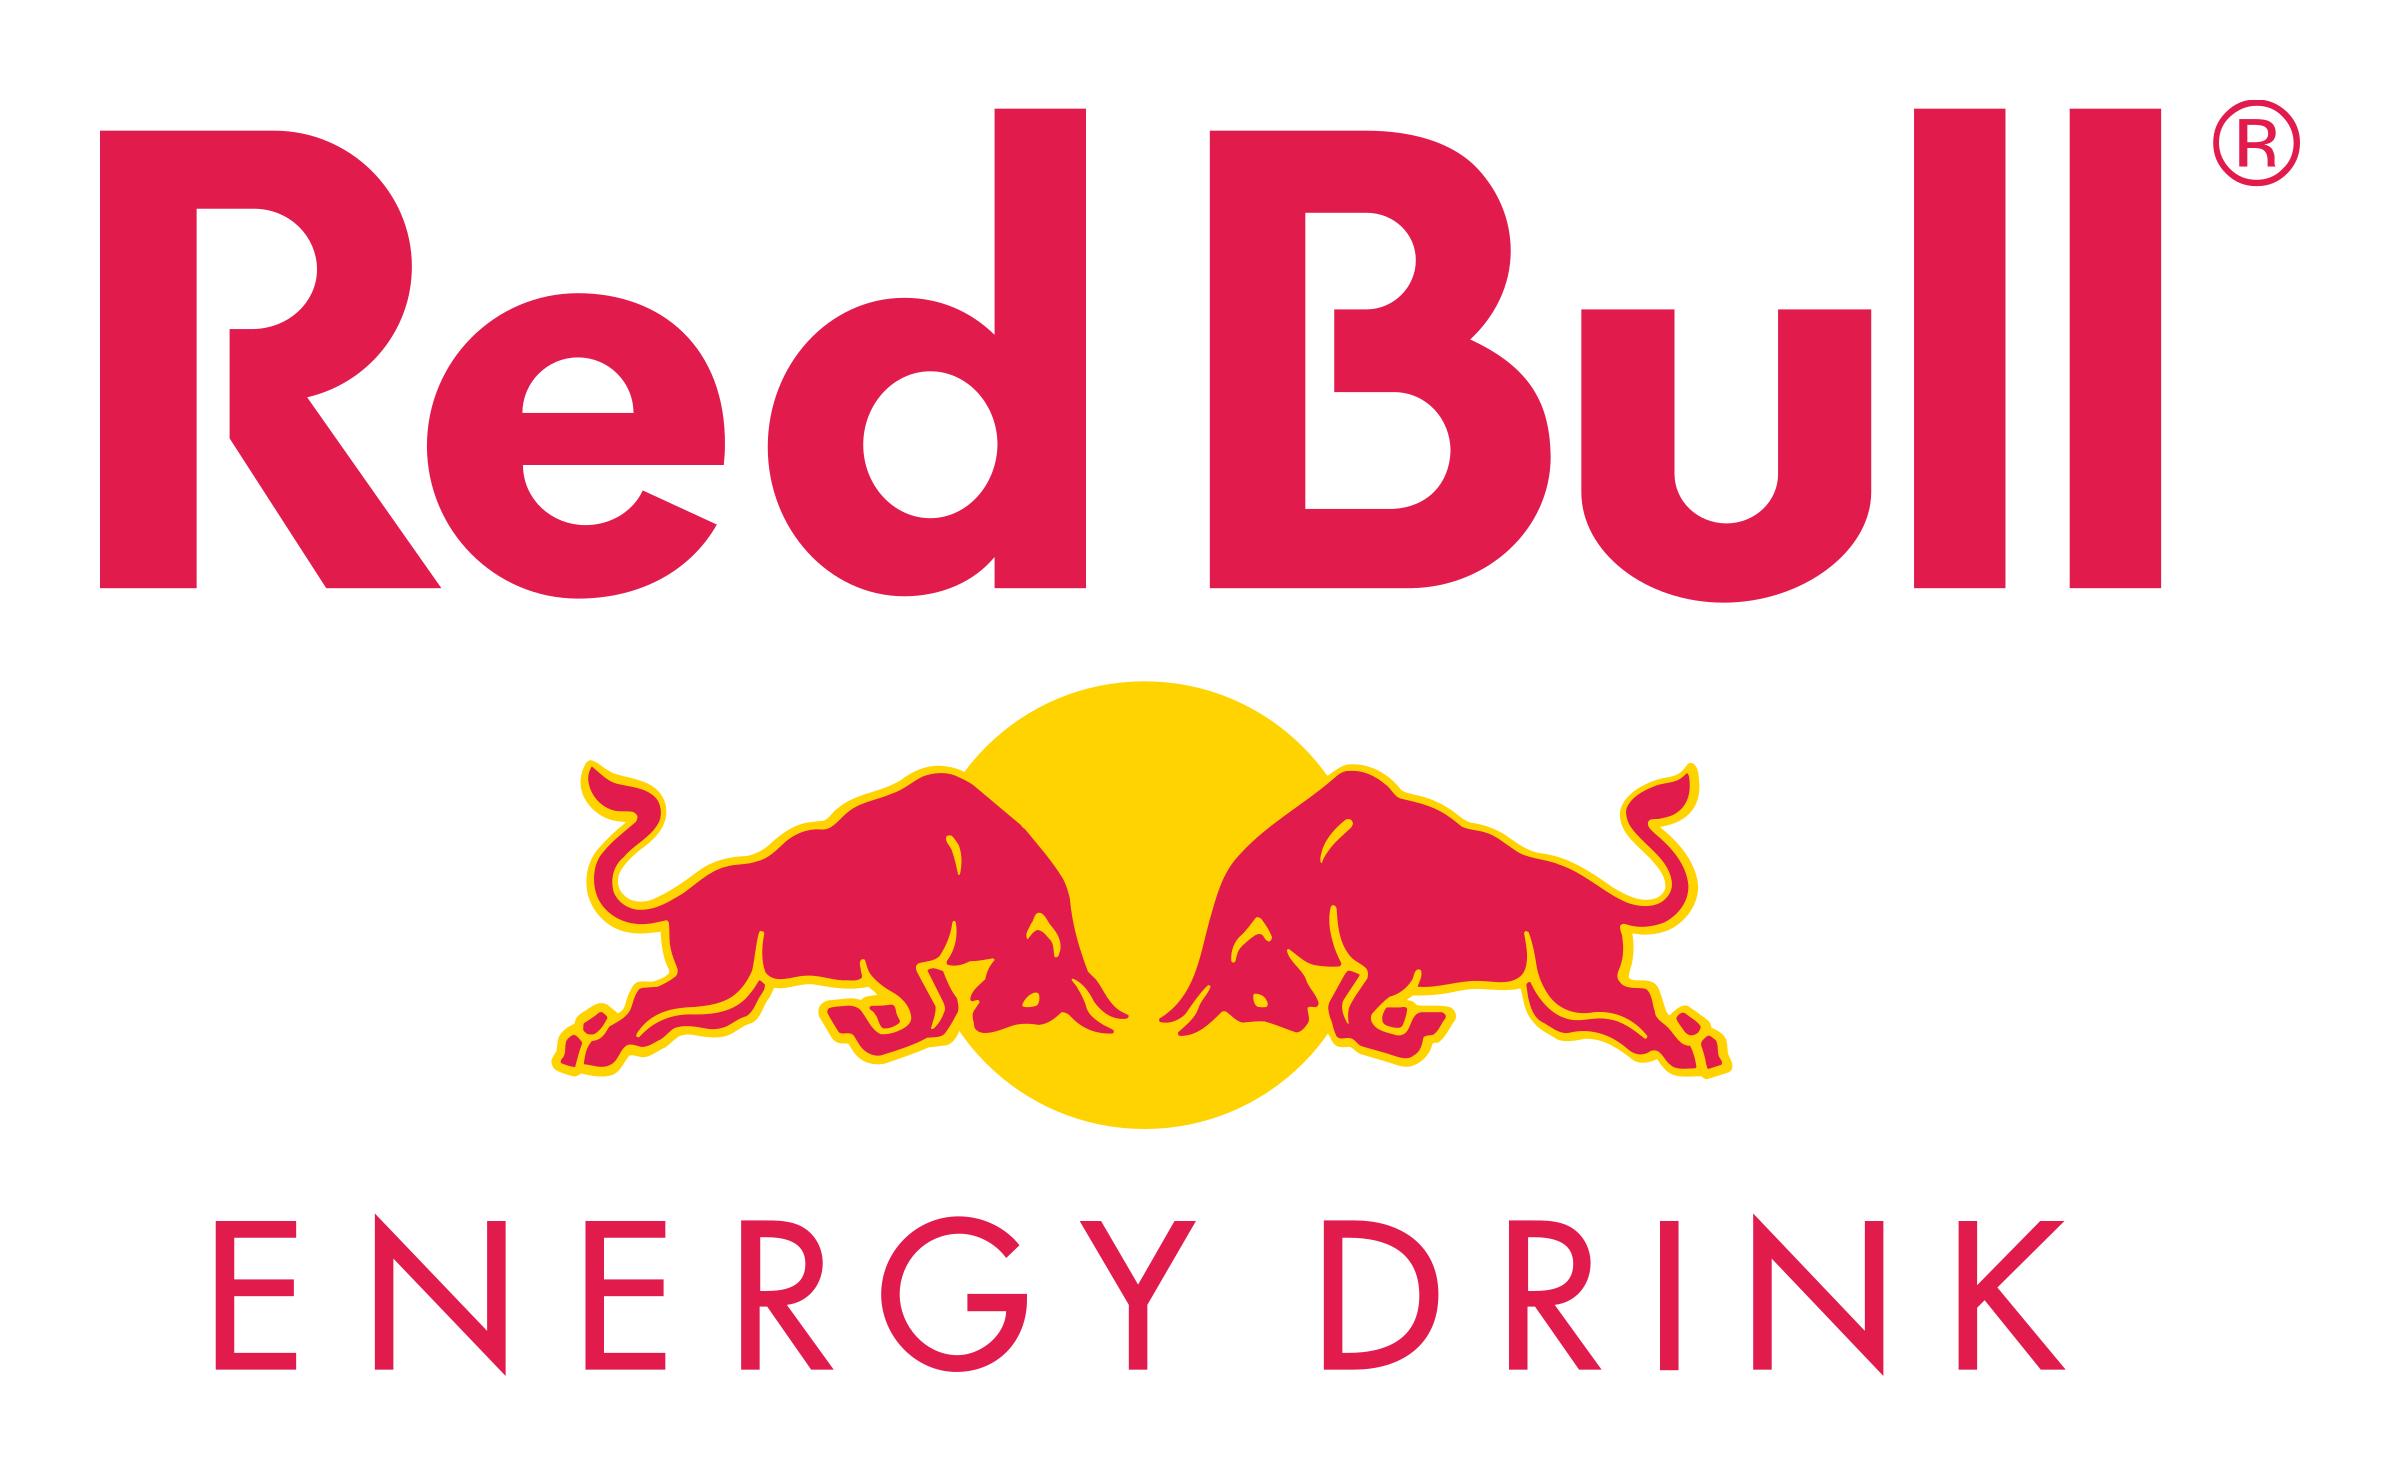 red bull 3 essay Time to charm the pants off the evaluators with my essay writing skills  before  which, i had downed half a bottle of the redbull and grabbed a couple of bites of  the  the pressure mounts when you have to do it in half or one third of the time.